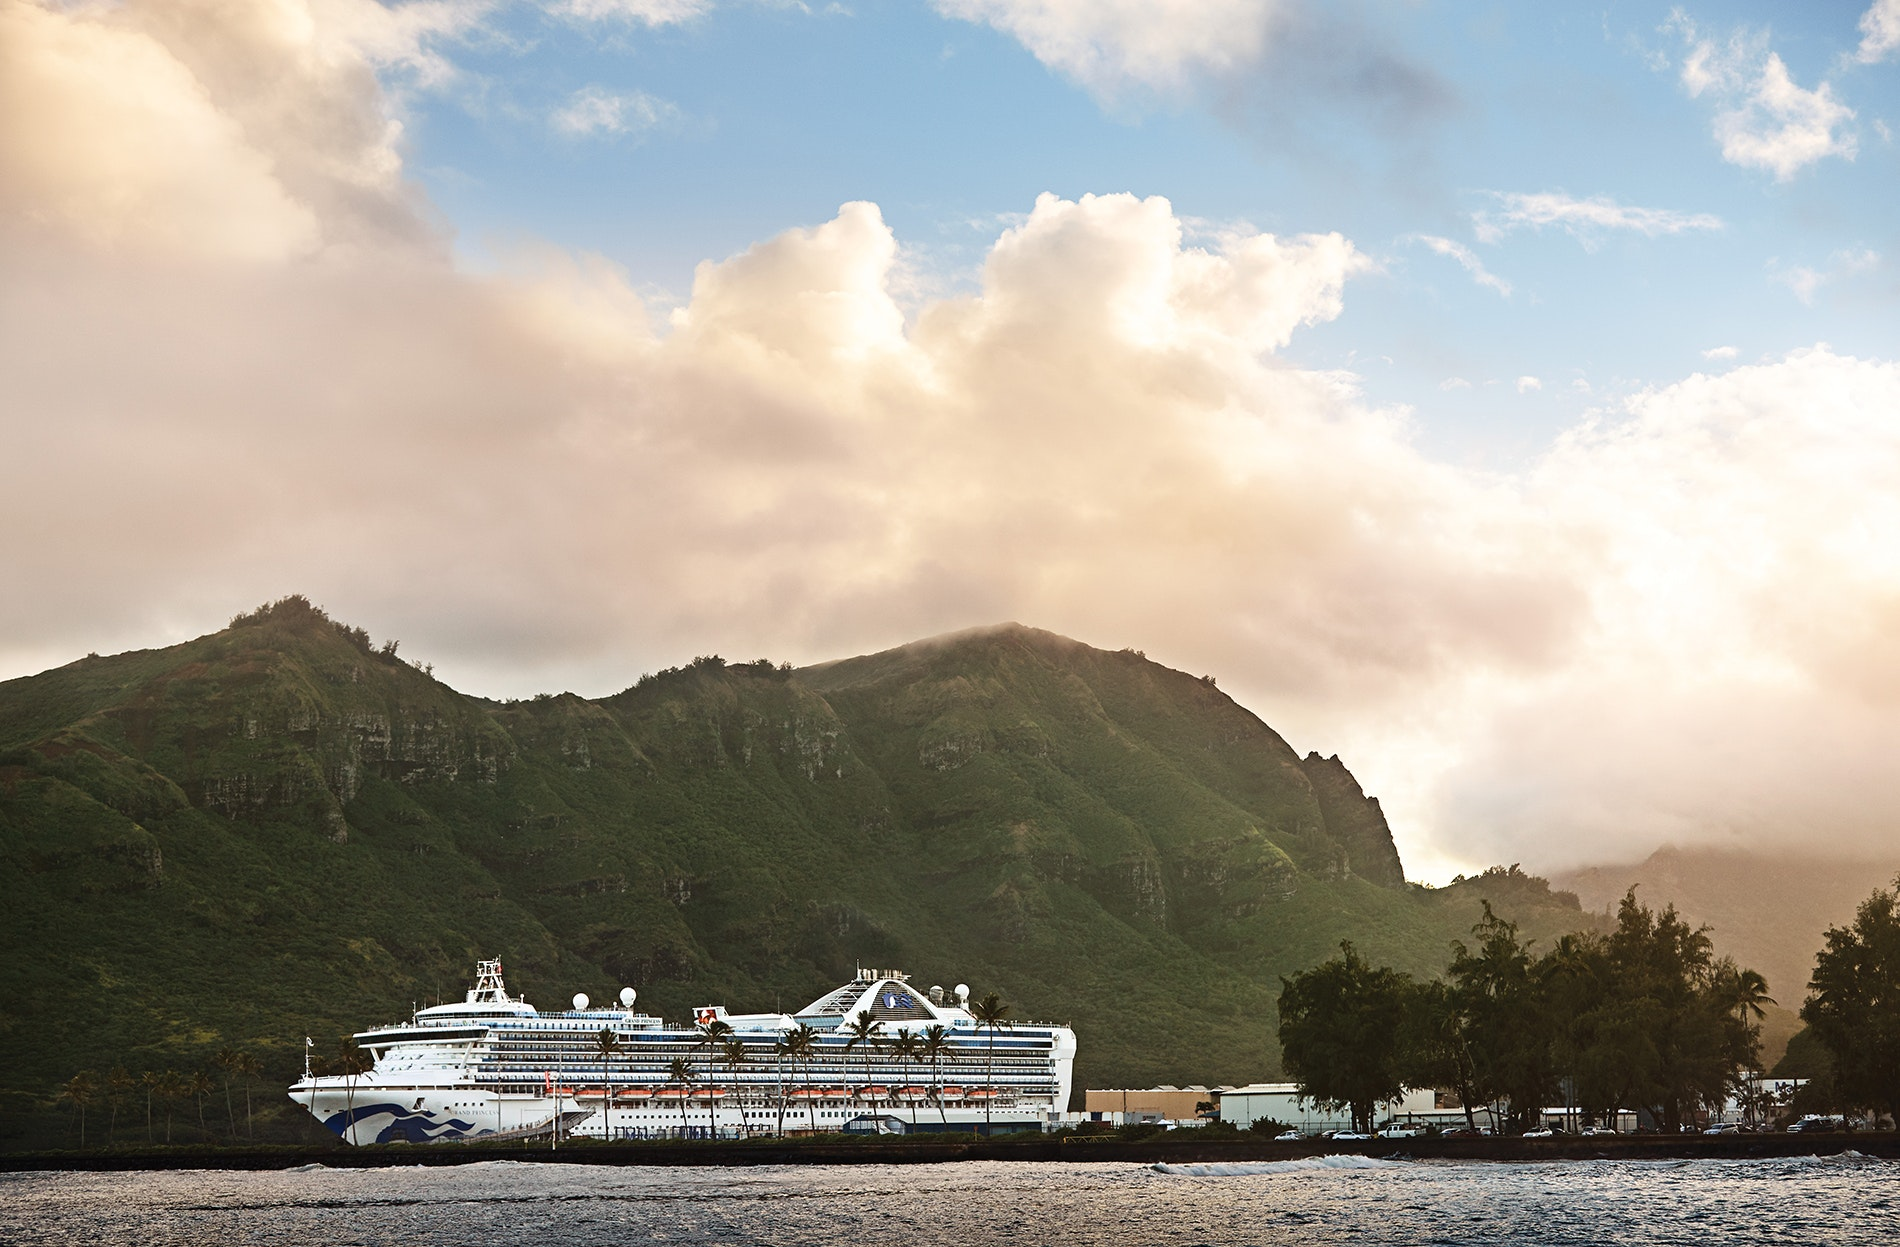 Skip the flight and sail directly from the U.S. mainland to Hawaii—Princess makes the journey, round-trip, from destinations like San Francisco and Los Angeles.